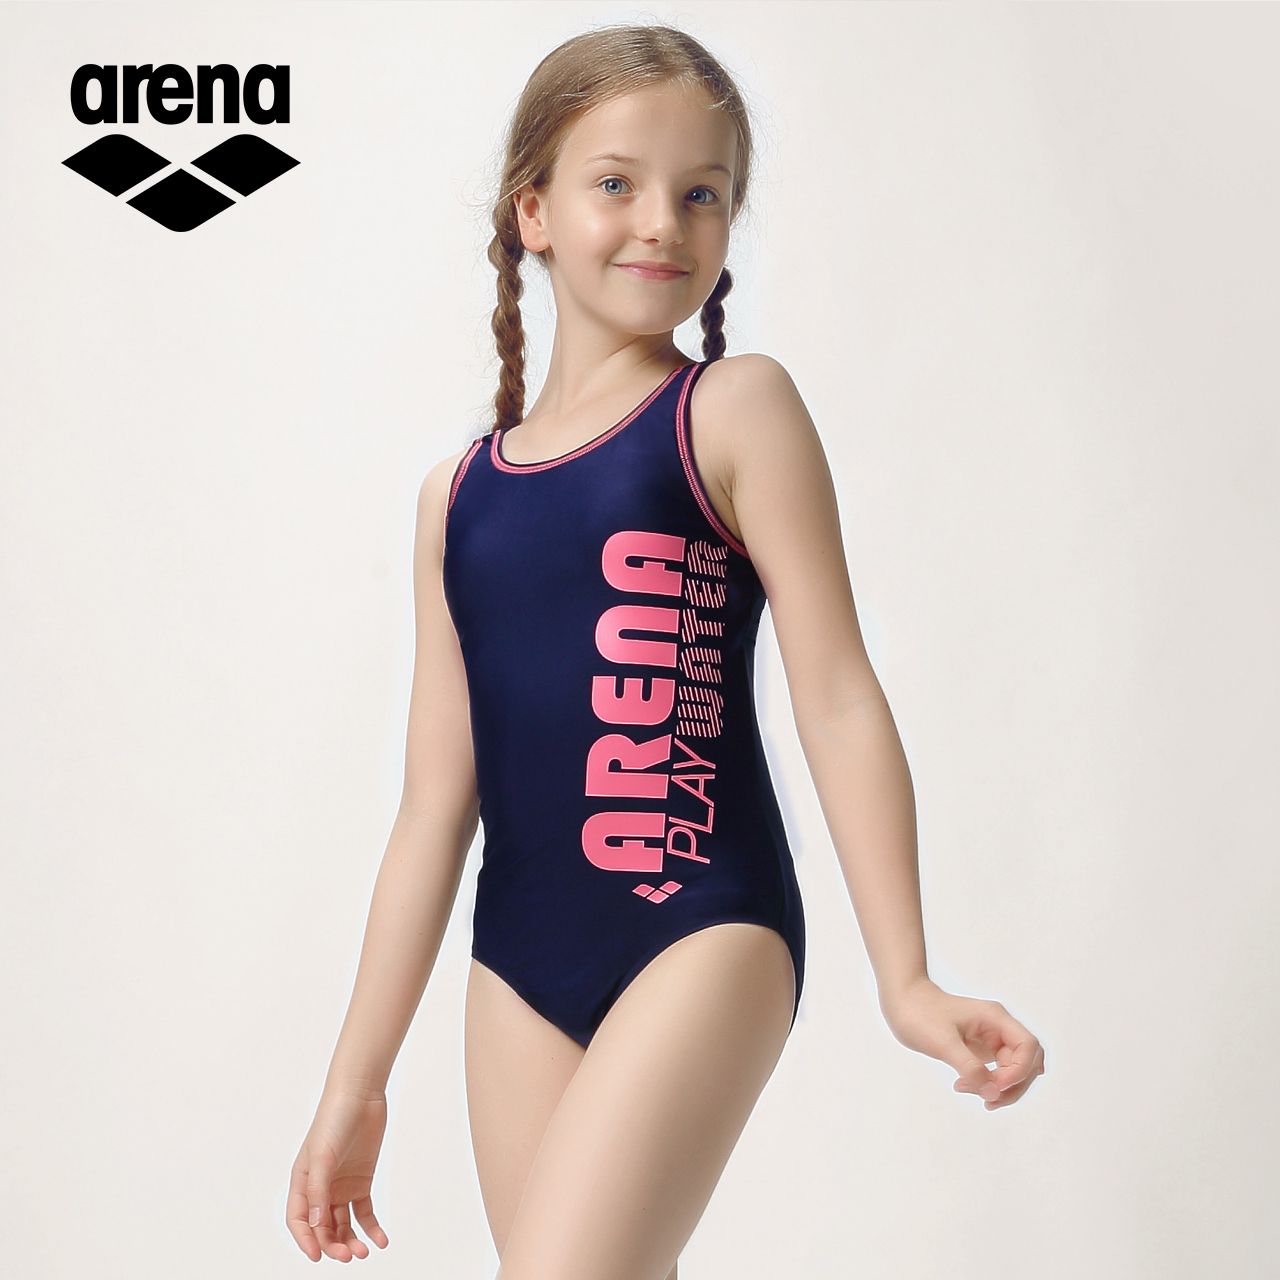 2b10c50122ae3 Arena arina children's swimsuit teen girls one-piece triangle swimsuit  professional water quick-drying swimsuit